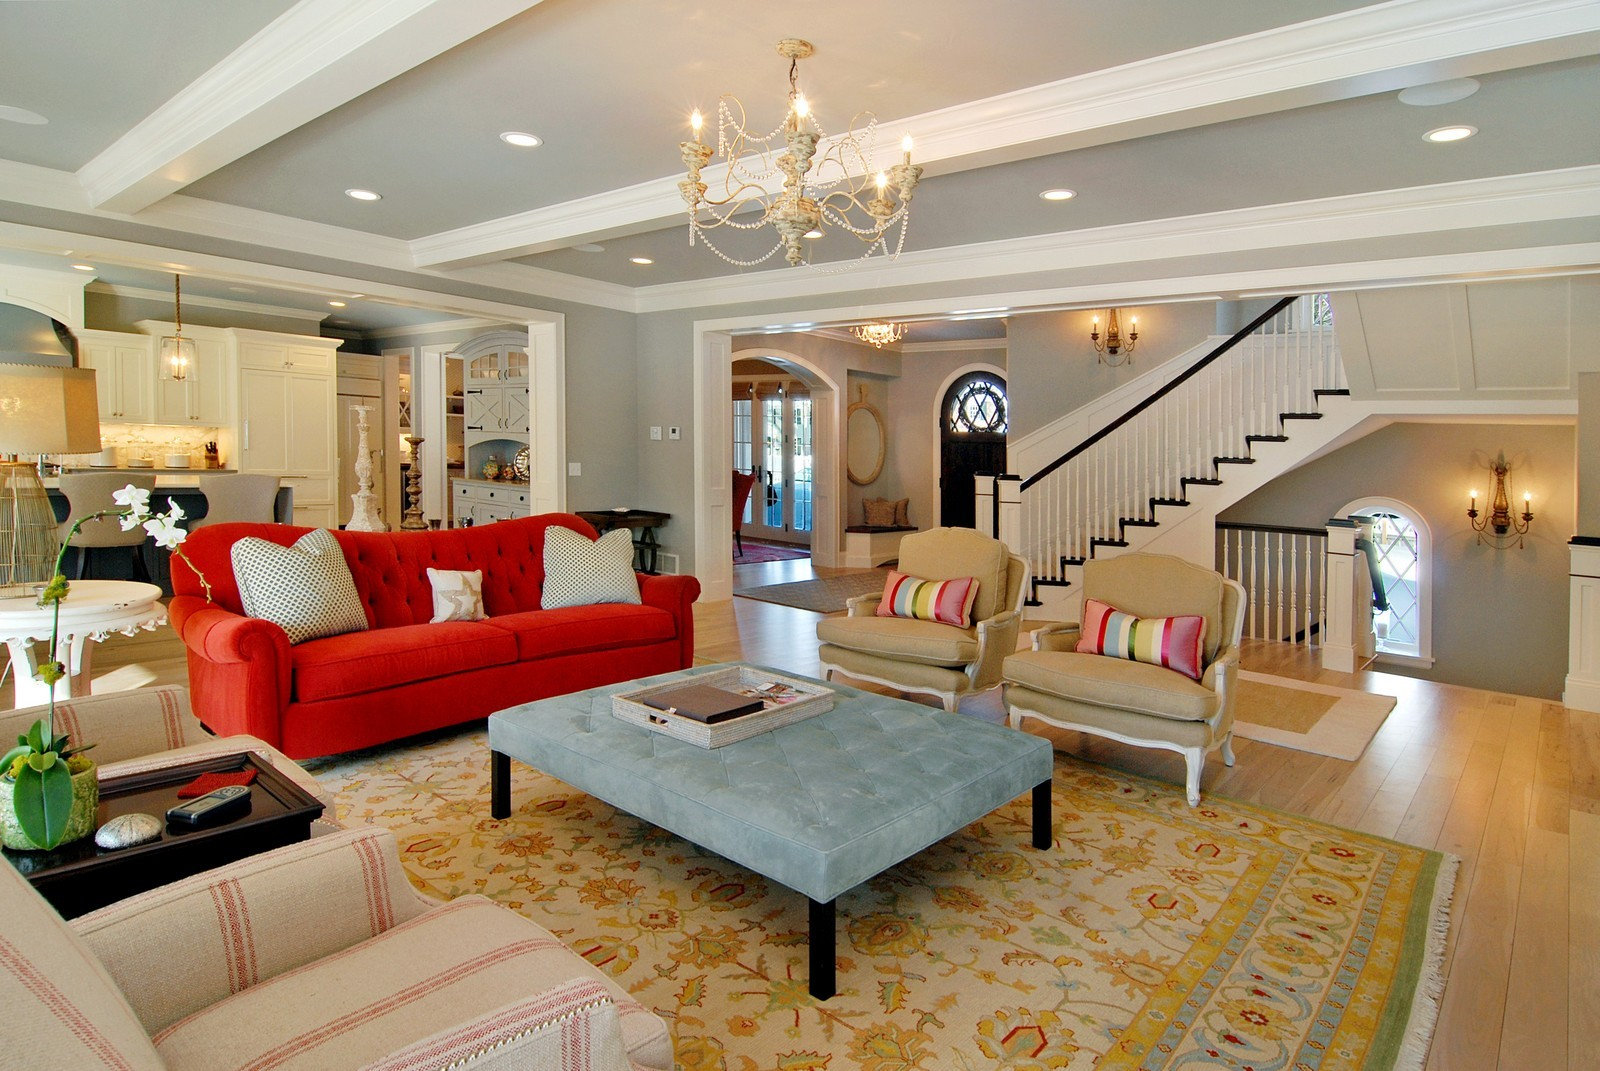 By answering these questions you'll know how to make the right sofa color choice. Couches that POP in the Most Traditional Spaces!